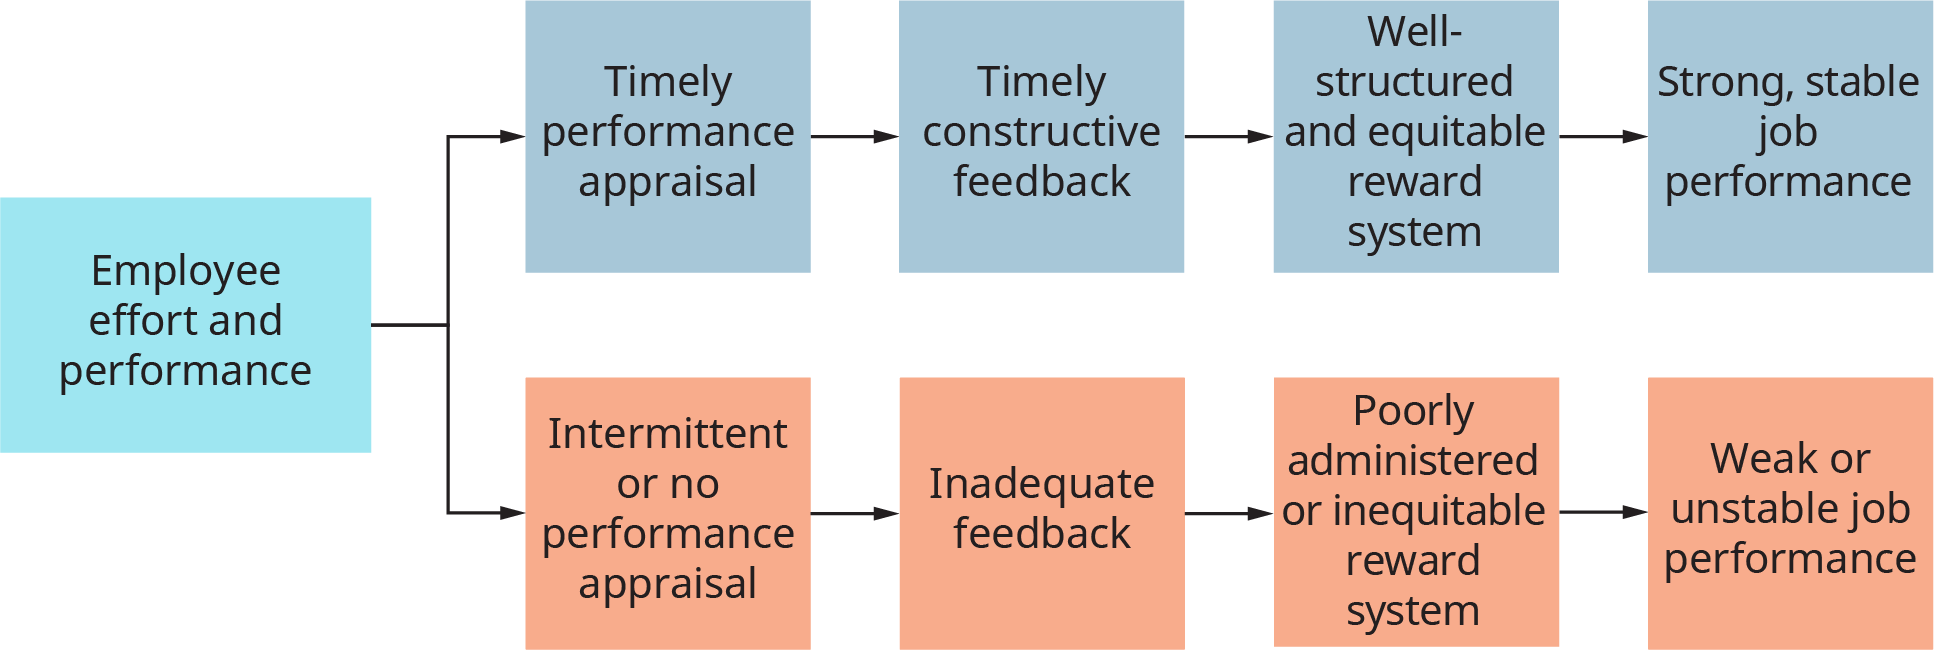 A diagram illustrates the positive and negative consequences of performance appraisal and reward process.